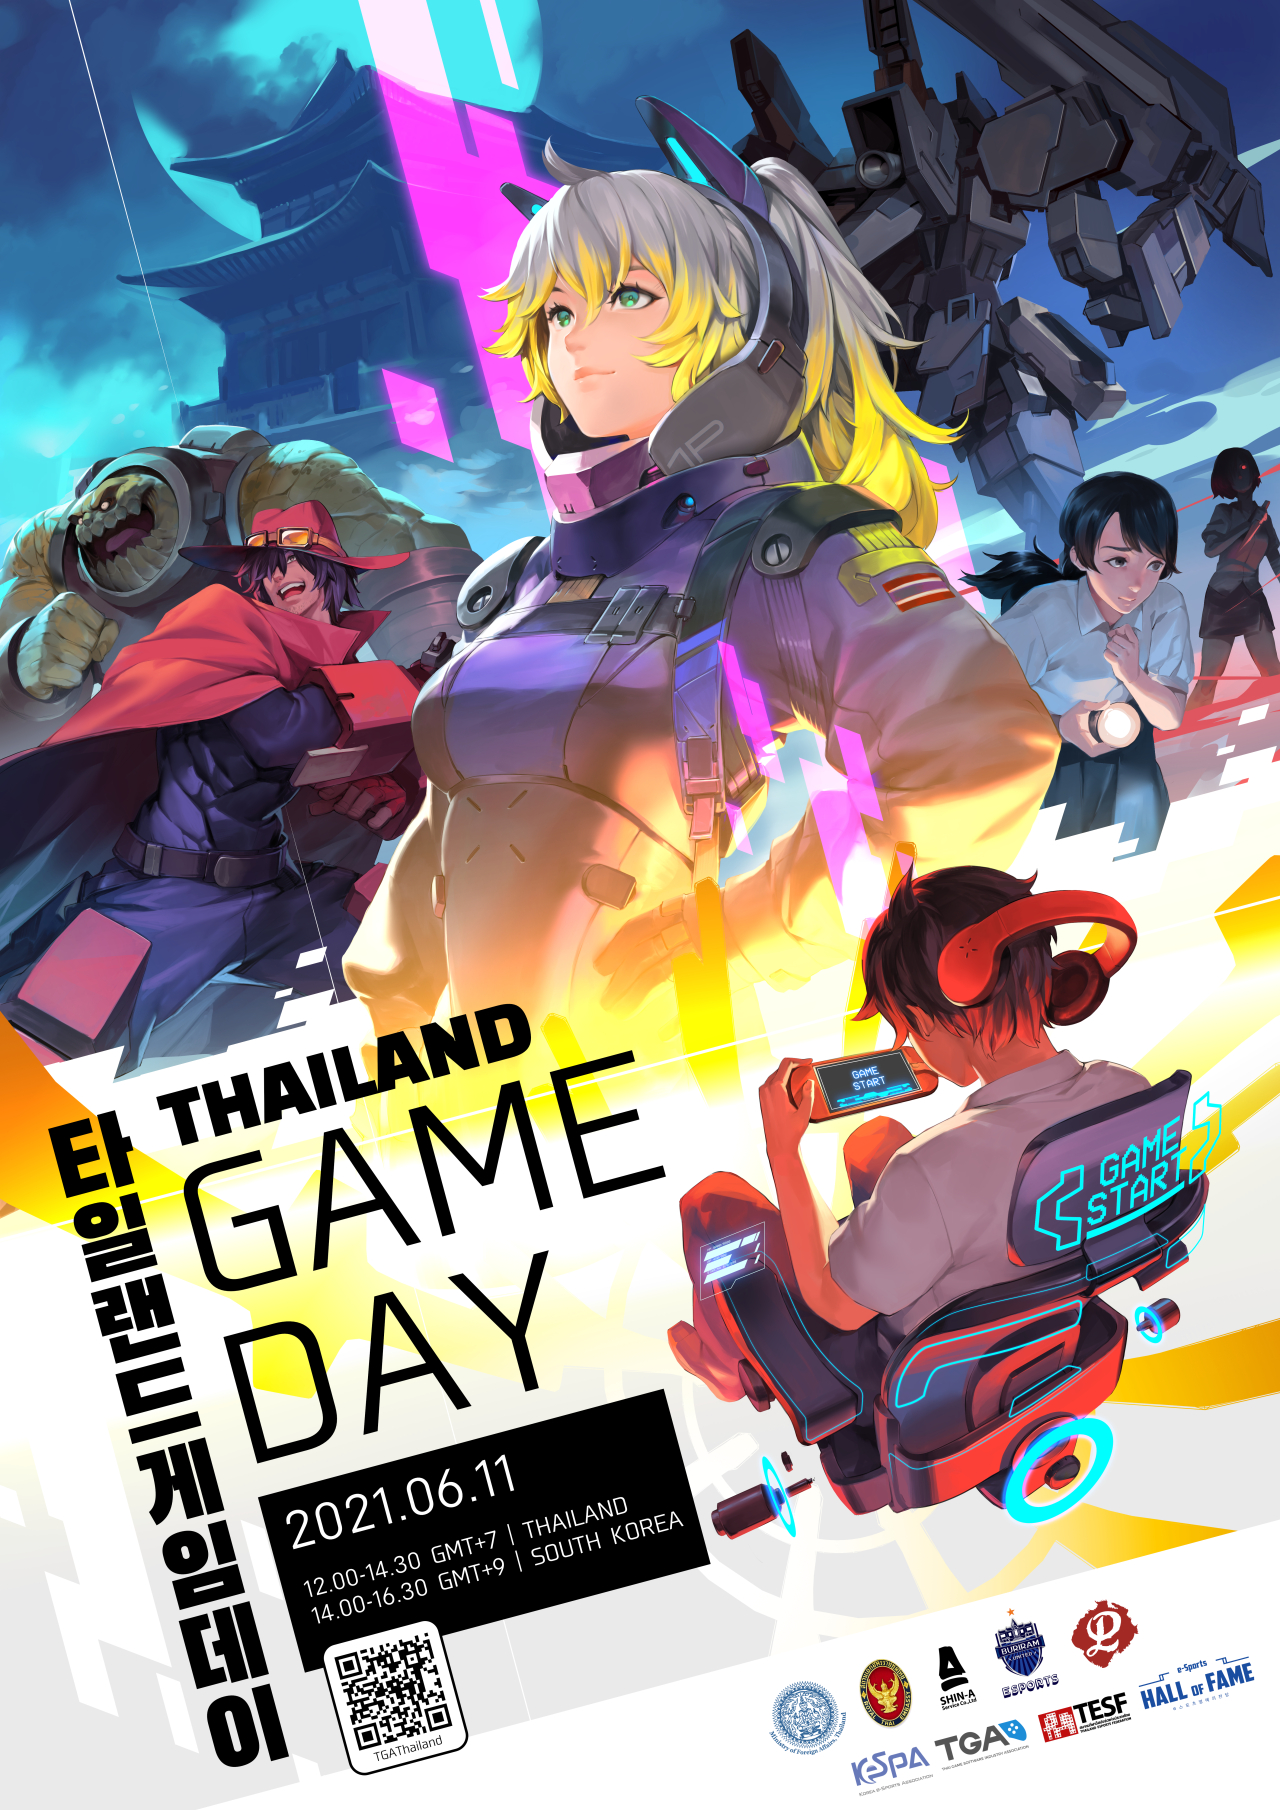 A promotional image for Thailand Game Day (Royal Thai Embassy in Seoul)